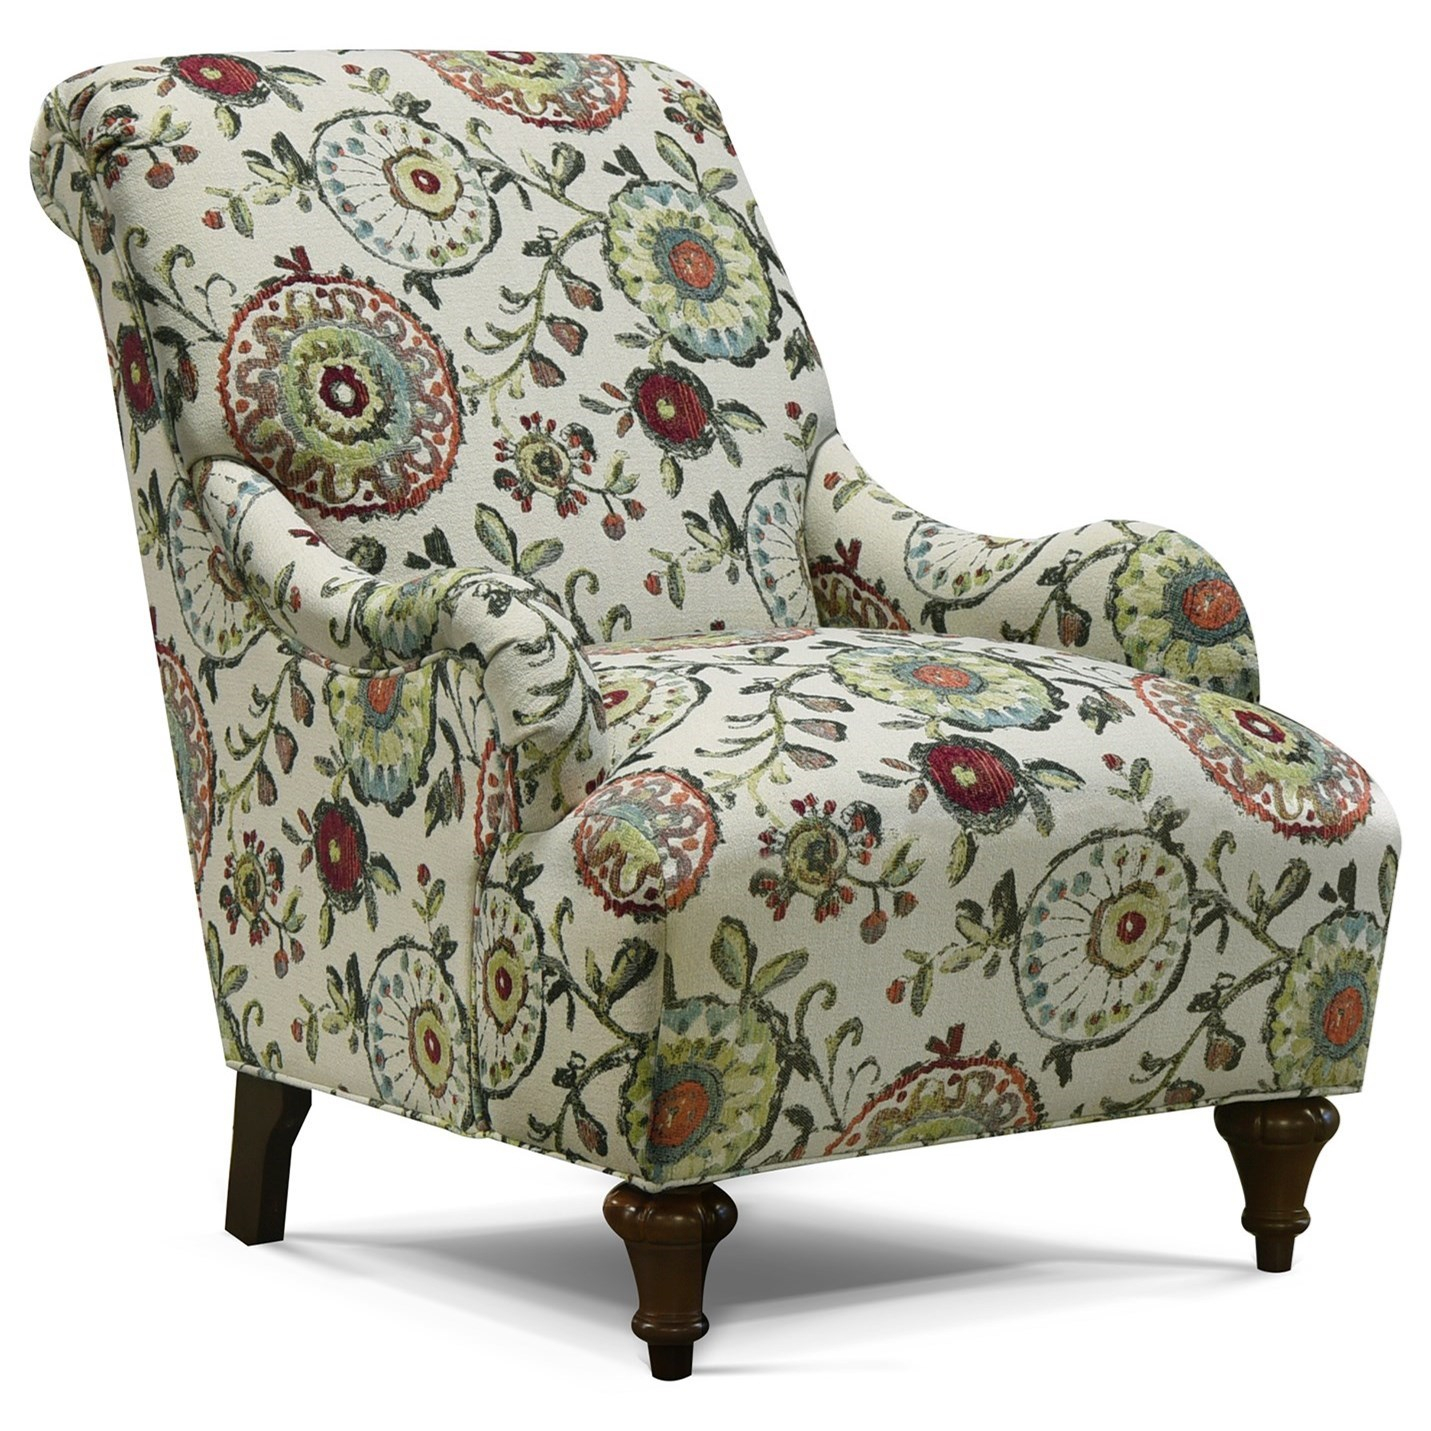 England Kelsey 8834 Cottage Accent Chair With Traditional In Cottage Style Sofas And Chairs (View 7 of 15)